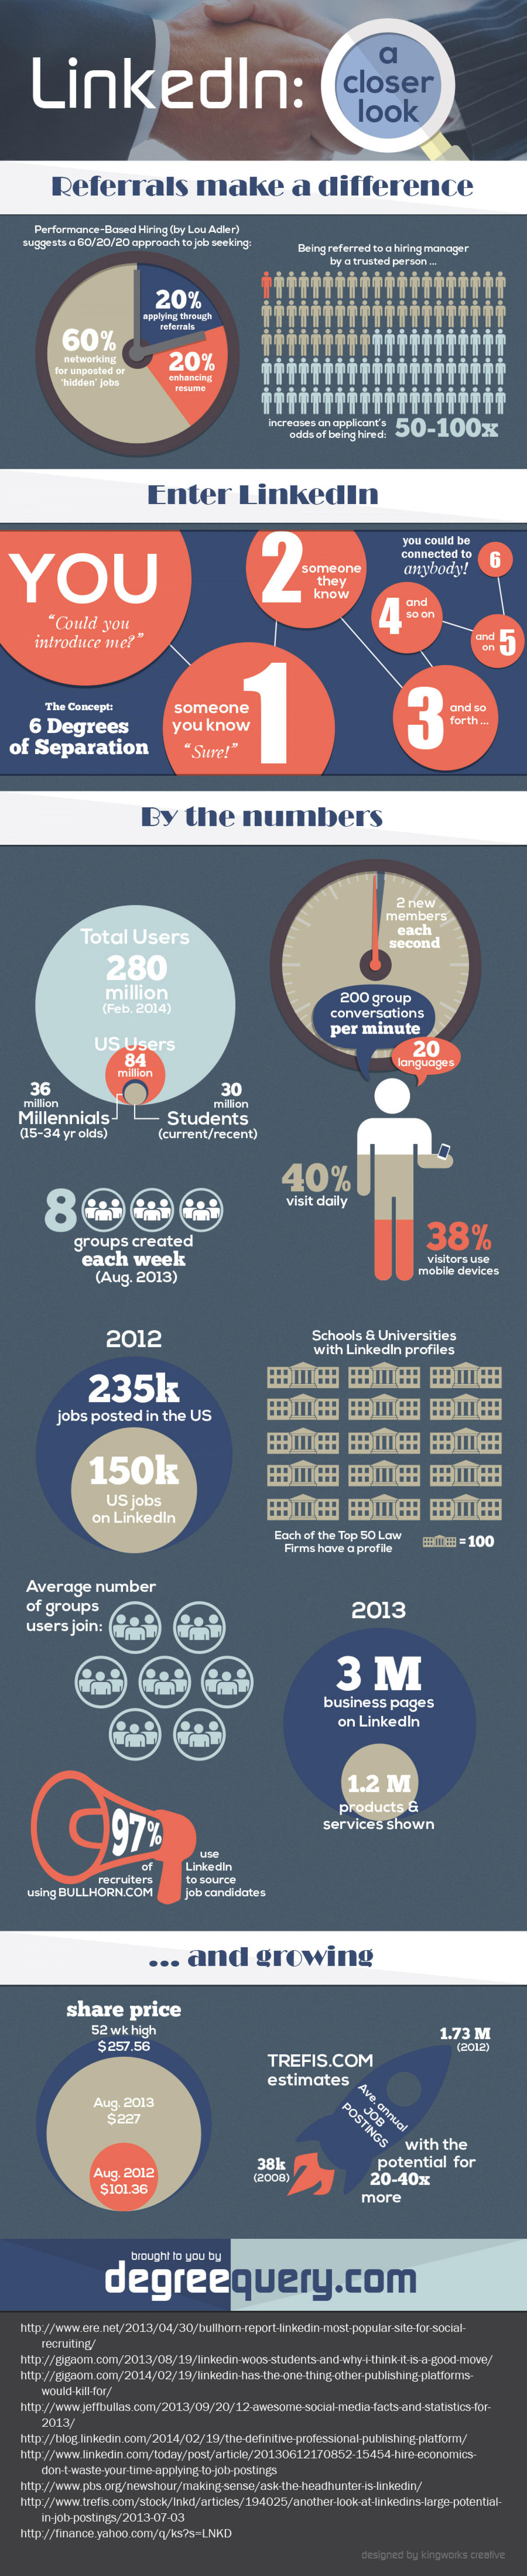 LinkedIn: A Closer Look Infographic